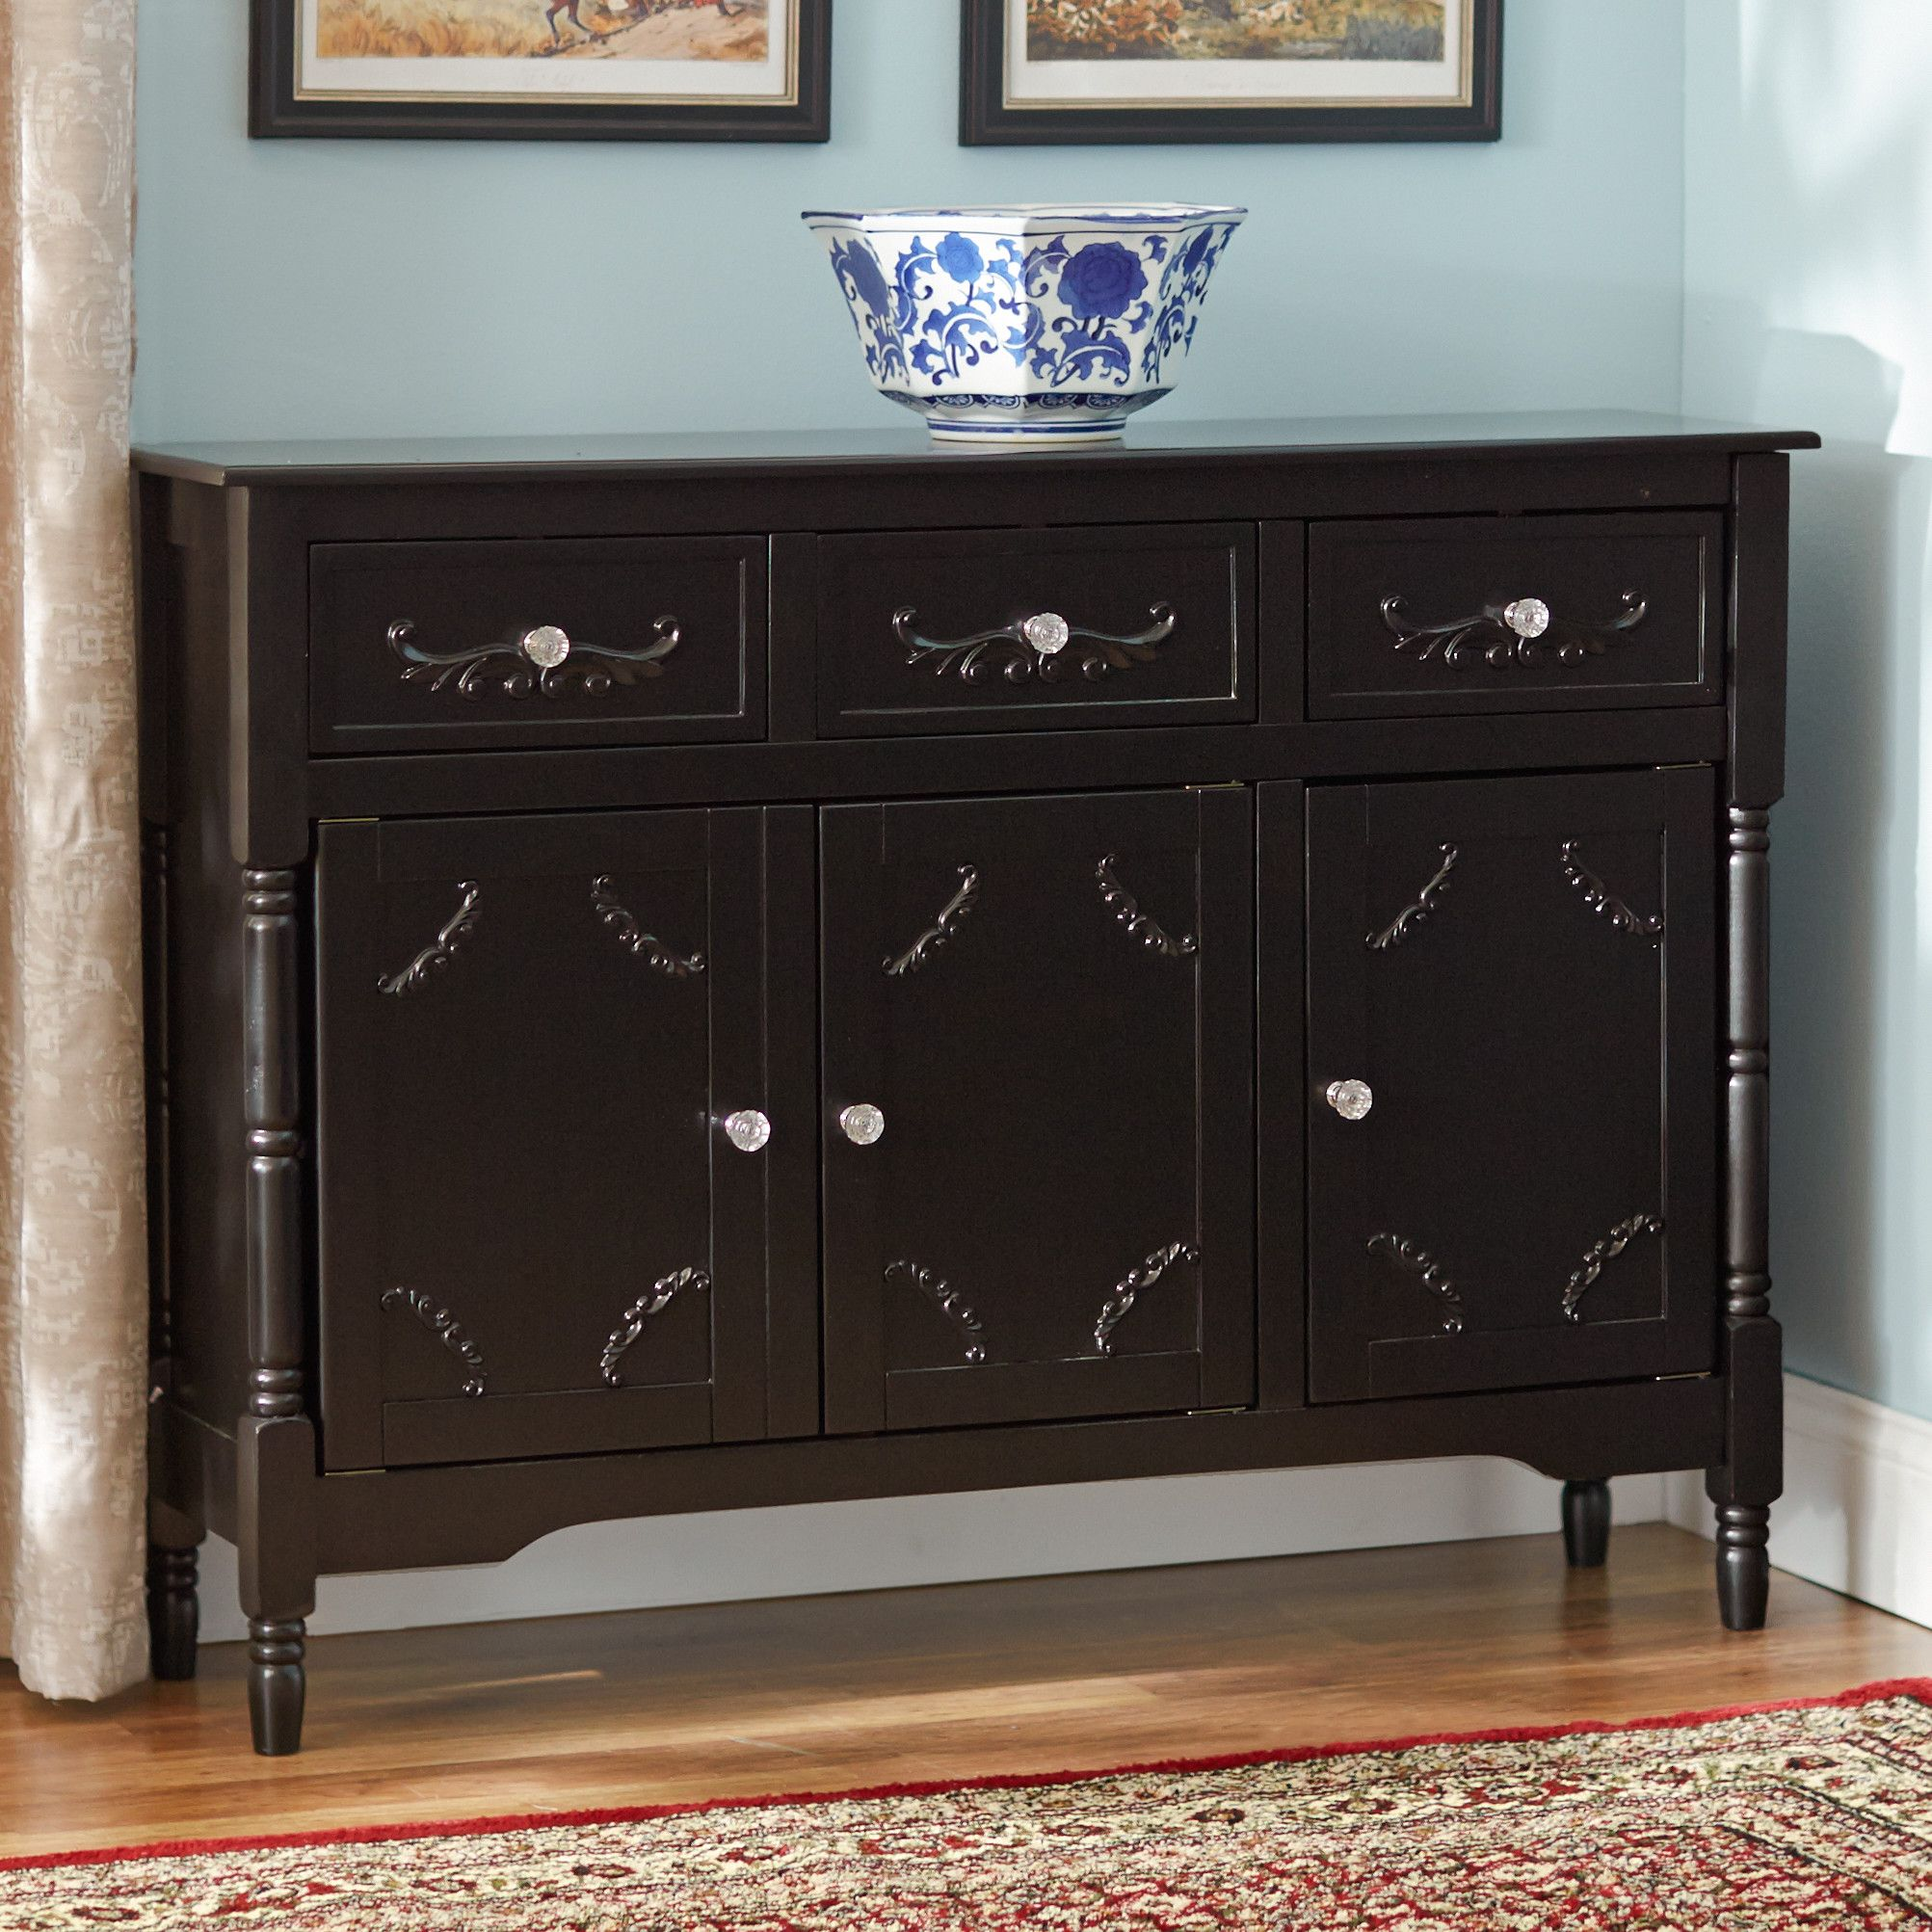 Best Of Entry Chest Of Drawers